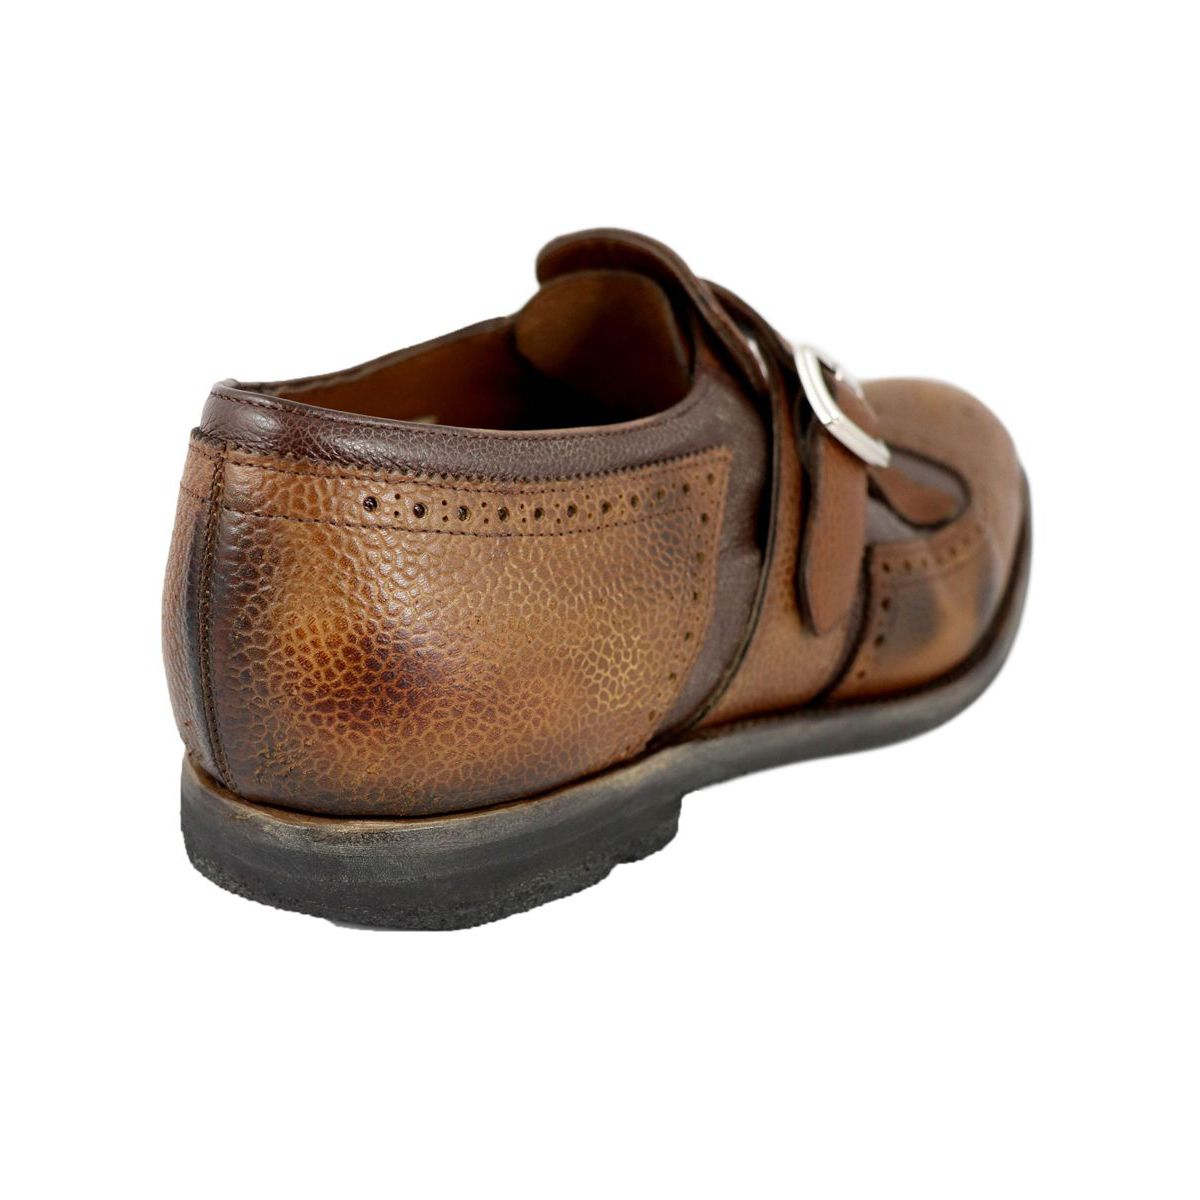 SHANGHAI moccasin with calfskin buckle Caramel Church's